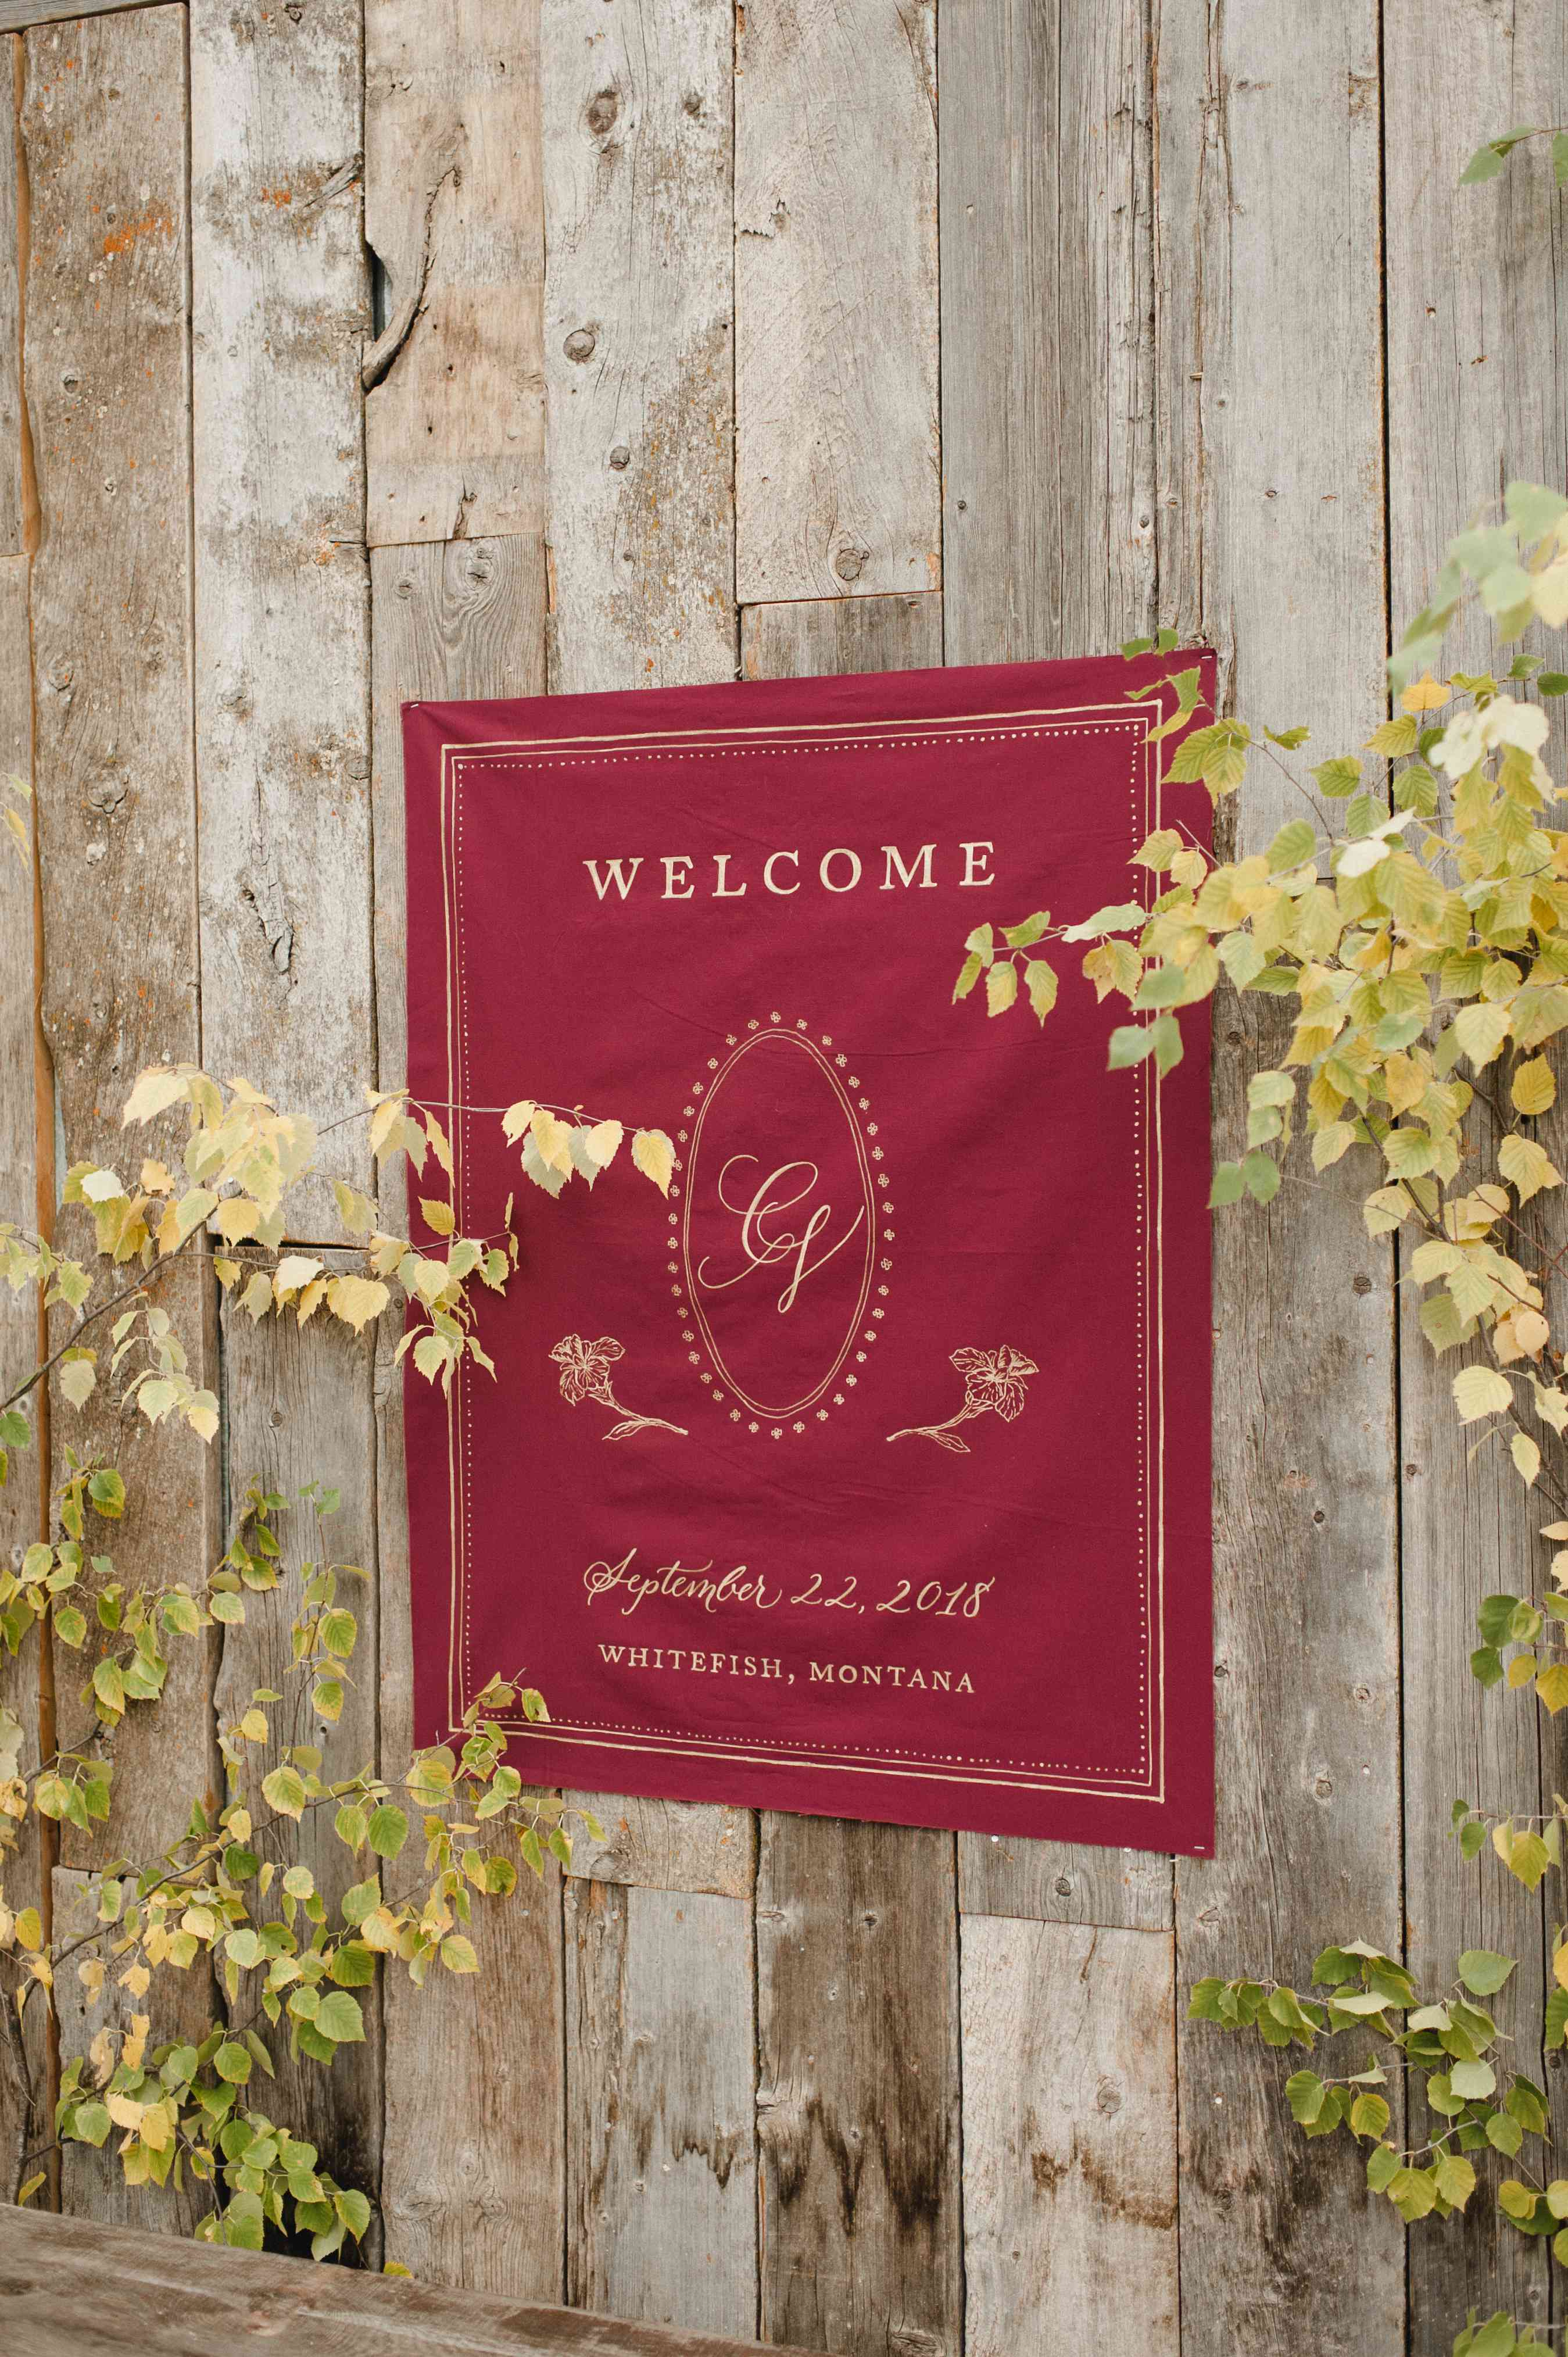 <p>welcome sign</p>